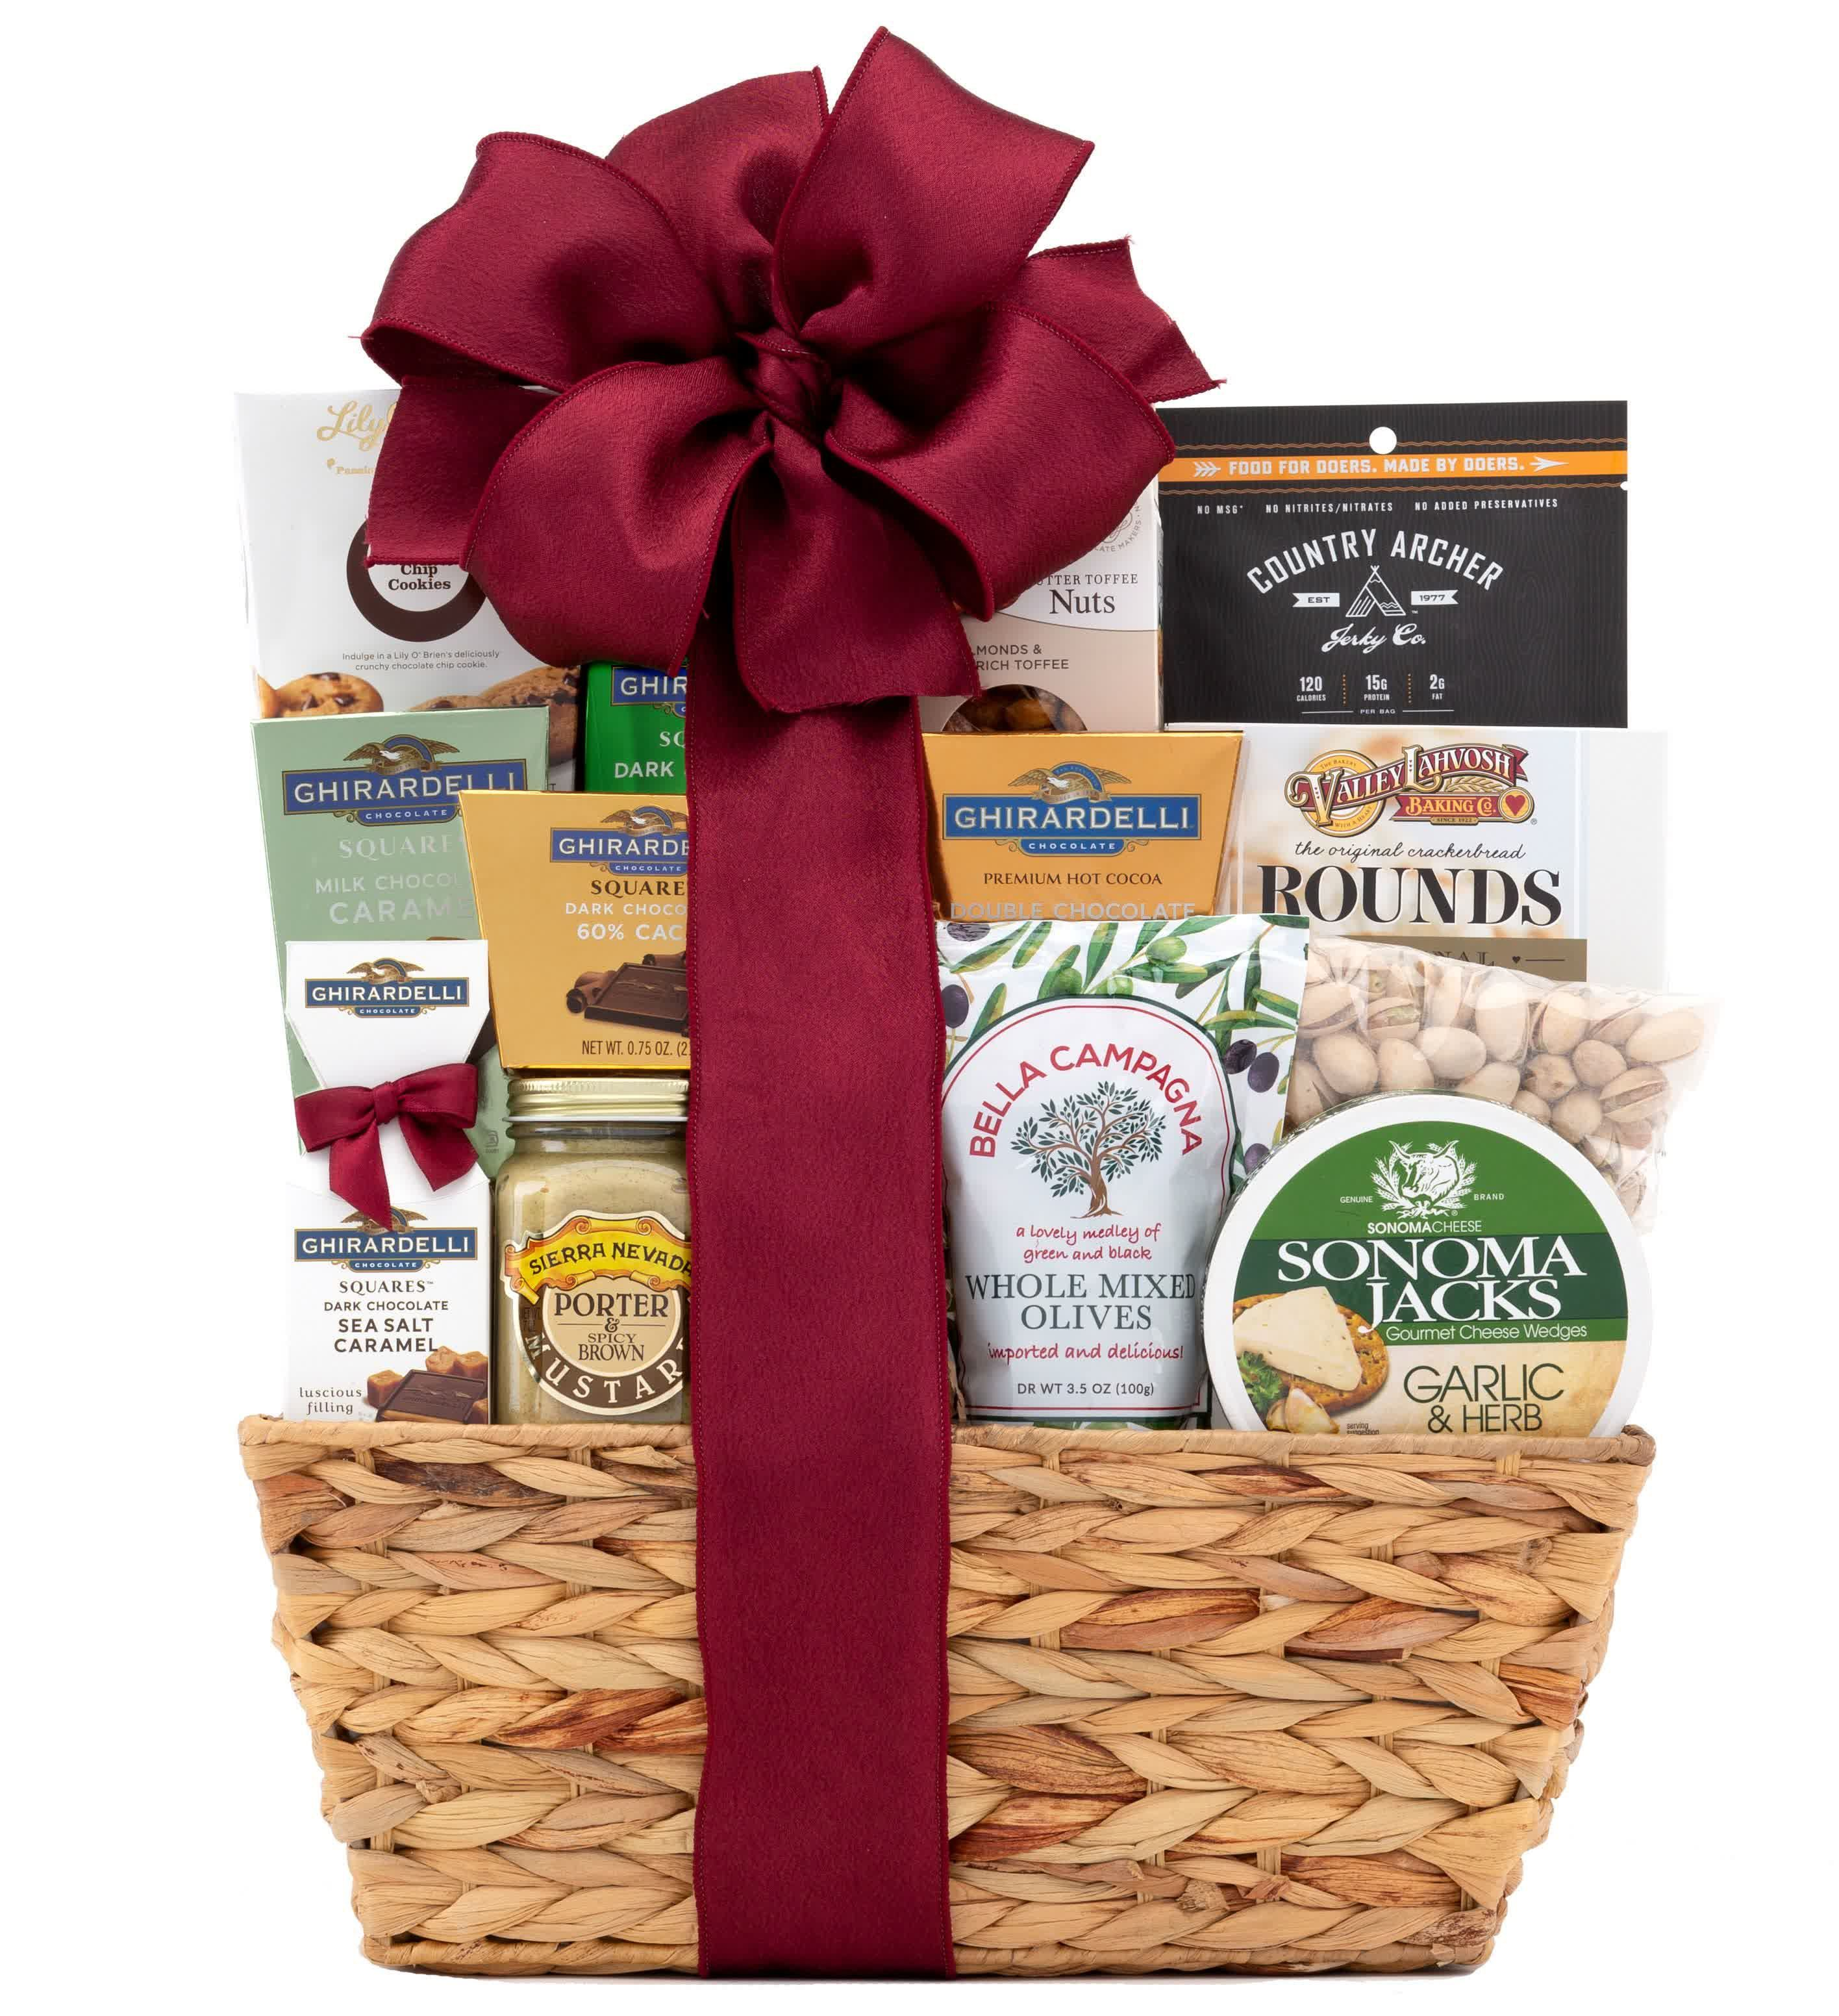 Classic Gourmet Gift Basket Wine Com In 2020 Gourmet Gift Baskets Wine Com Chocolate Chip Cookies